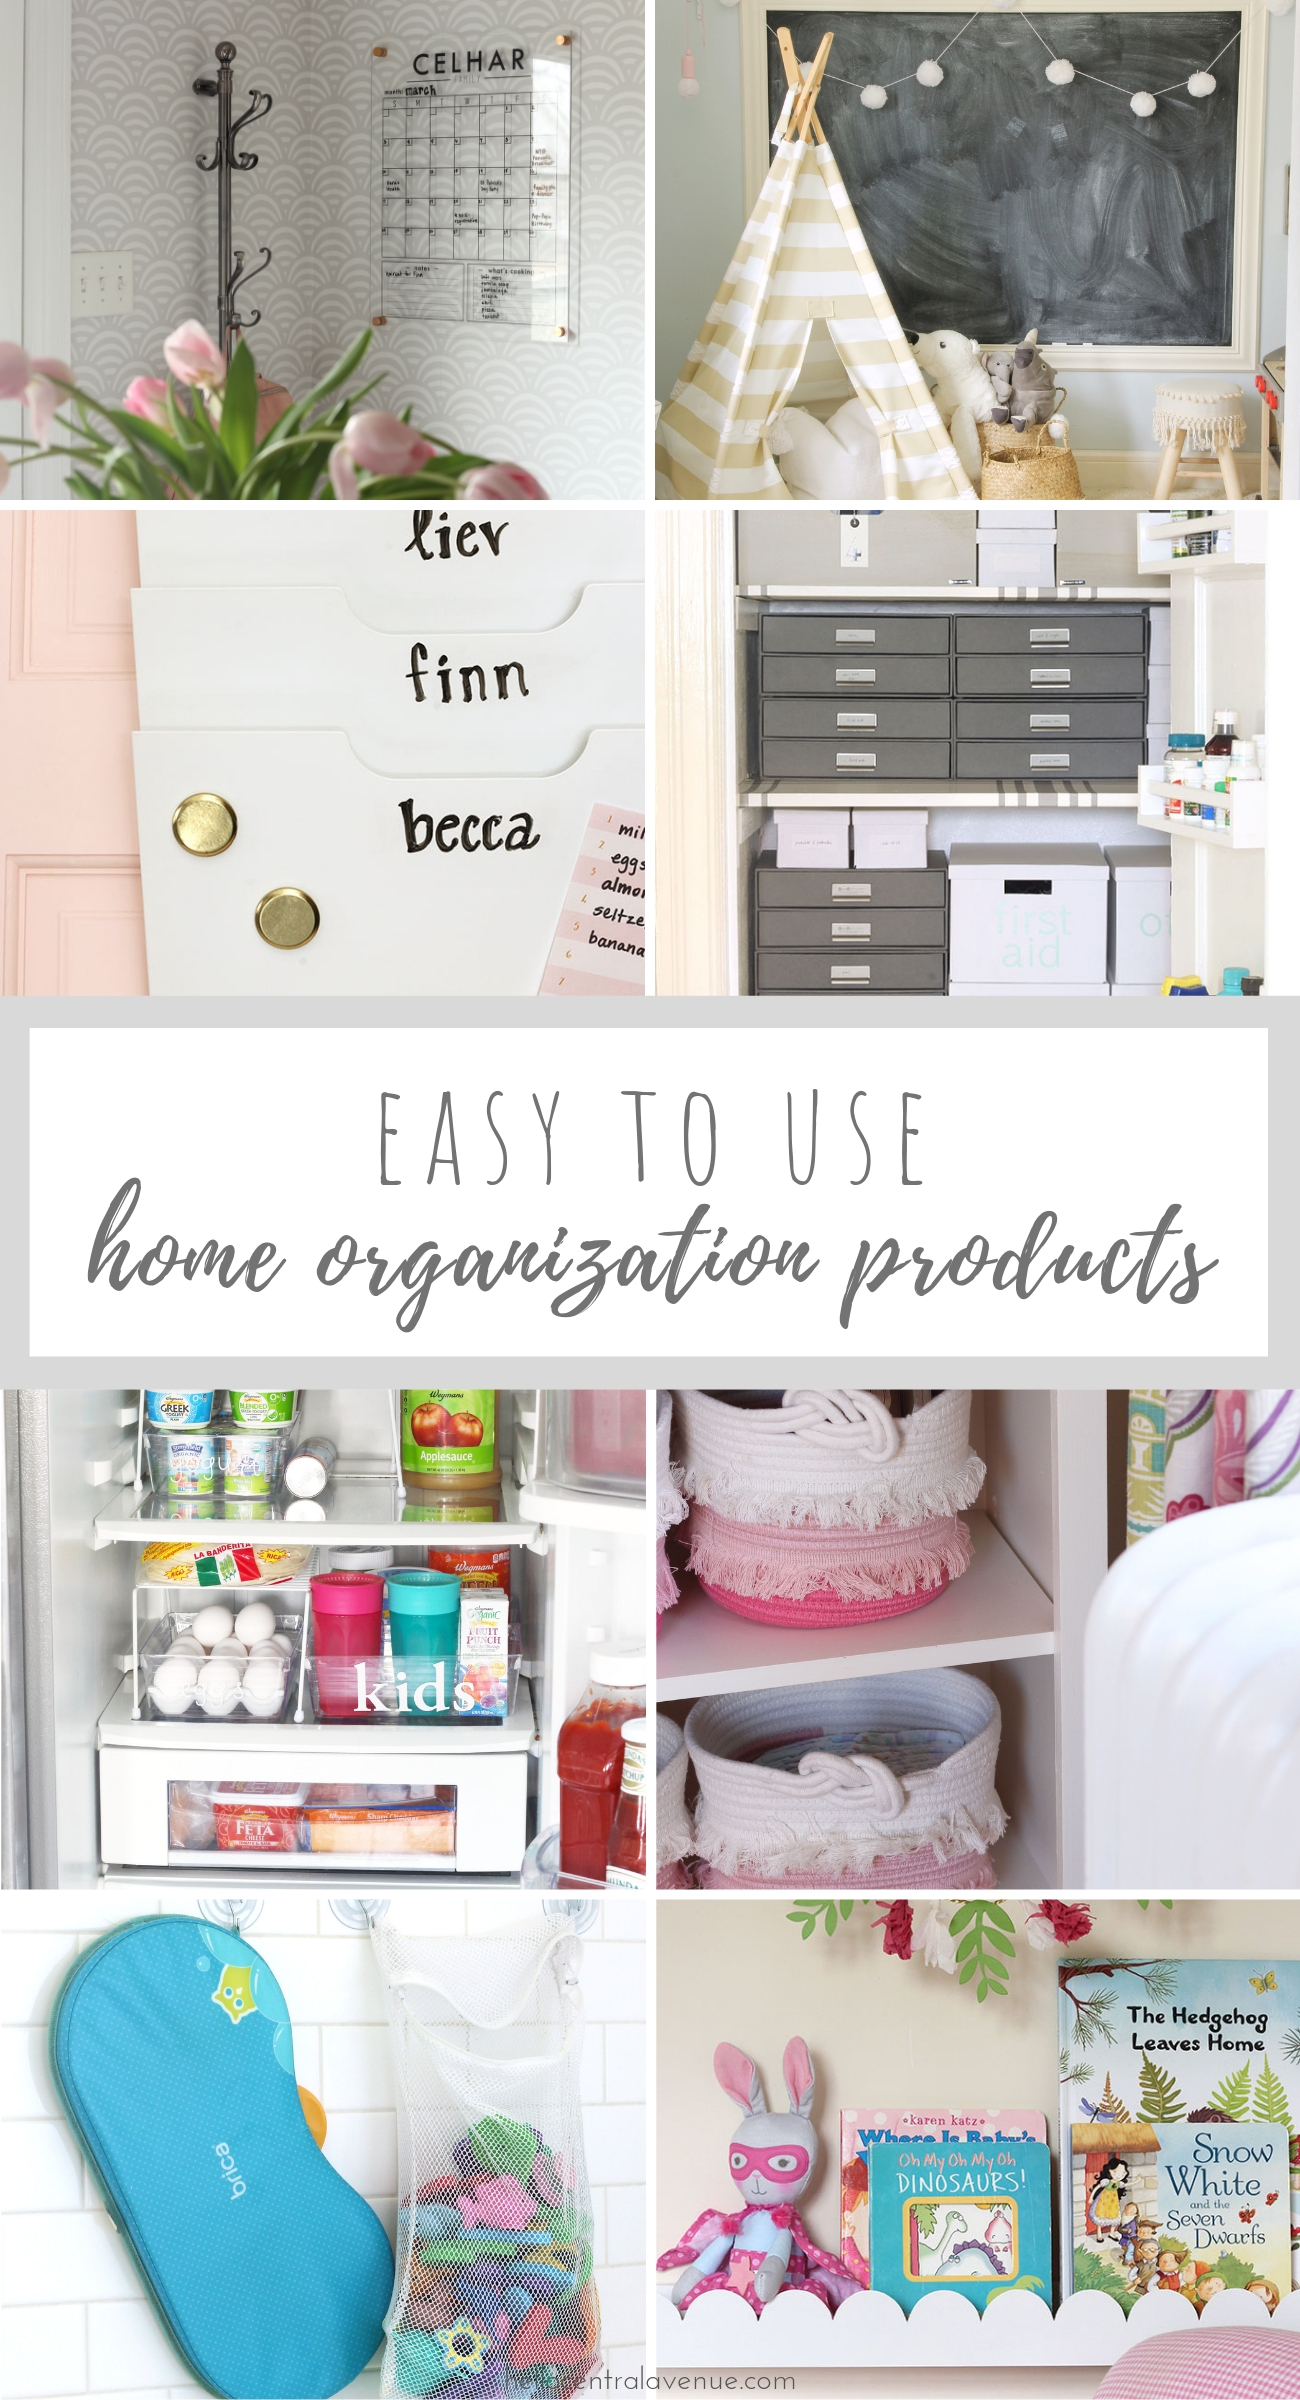 Come see the most effective home organization products to help you get organized and stay organized.